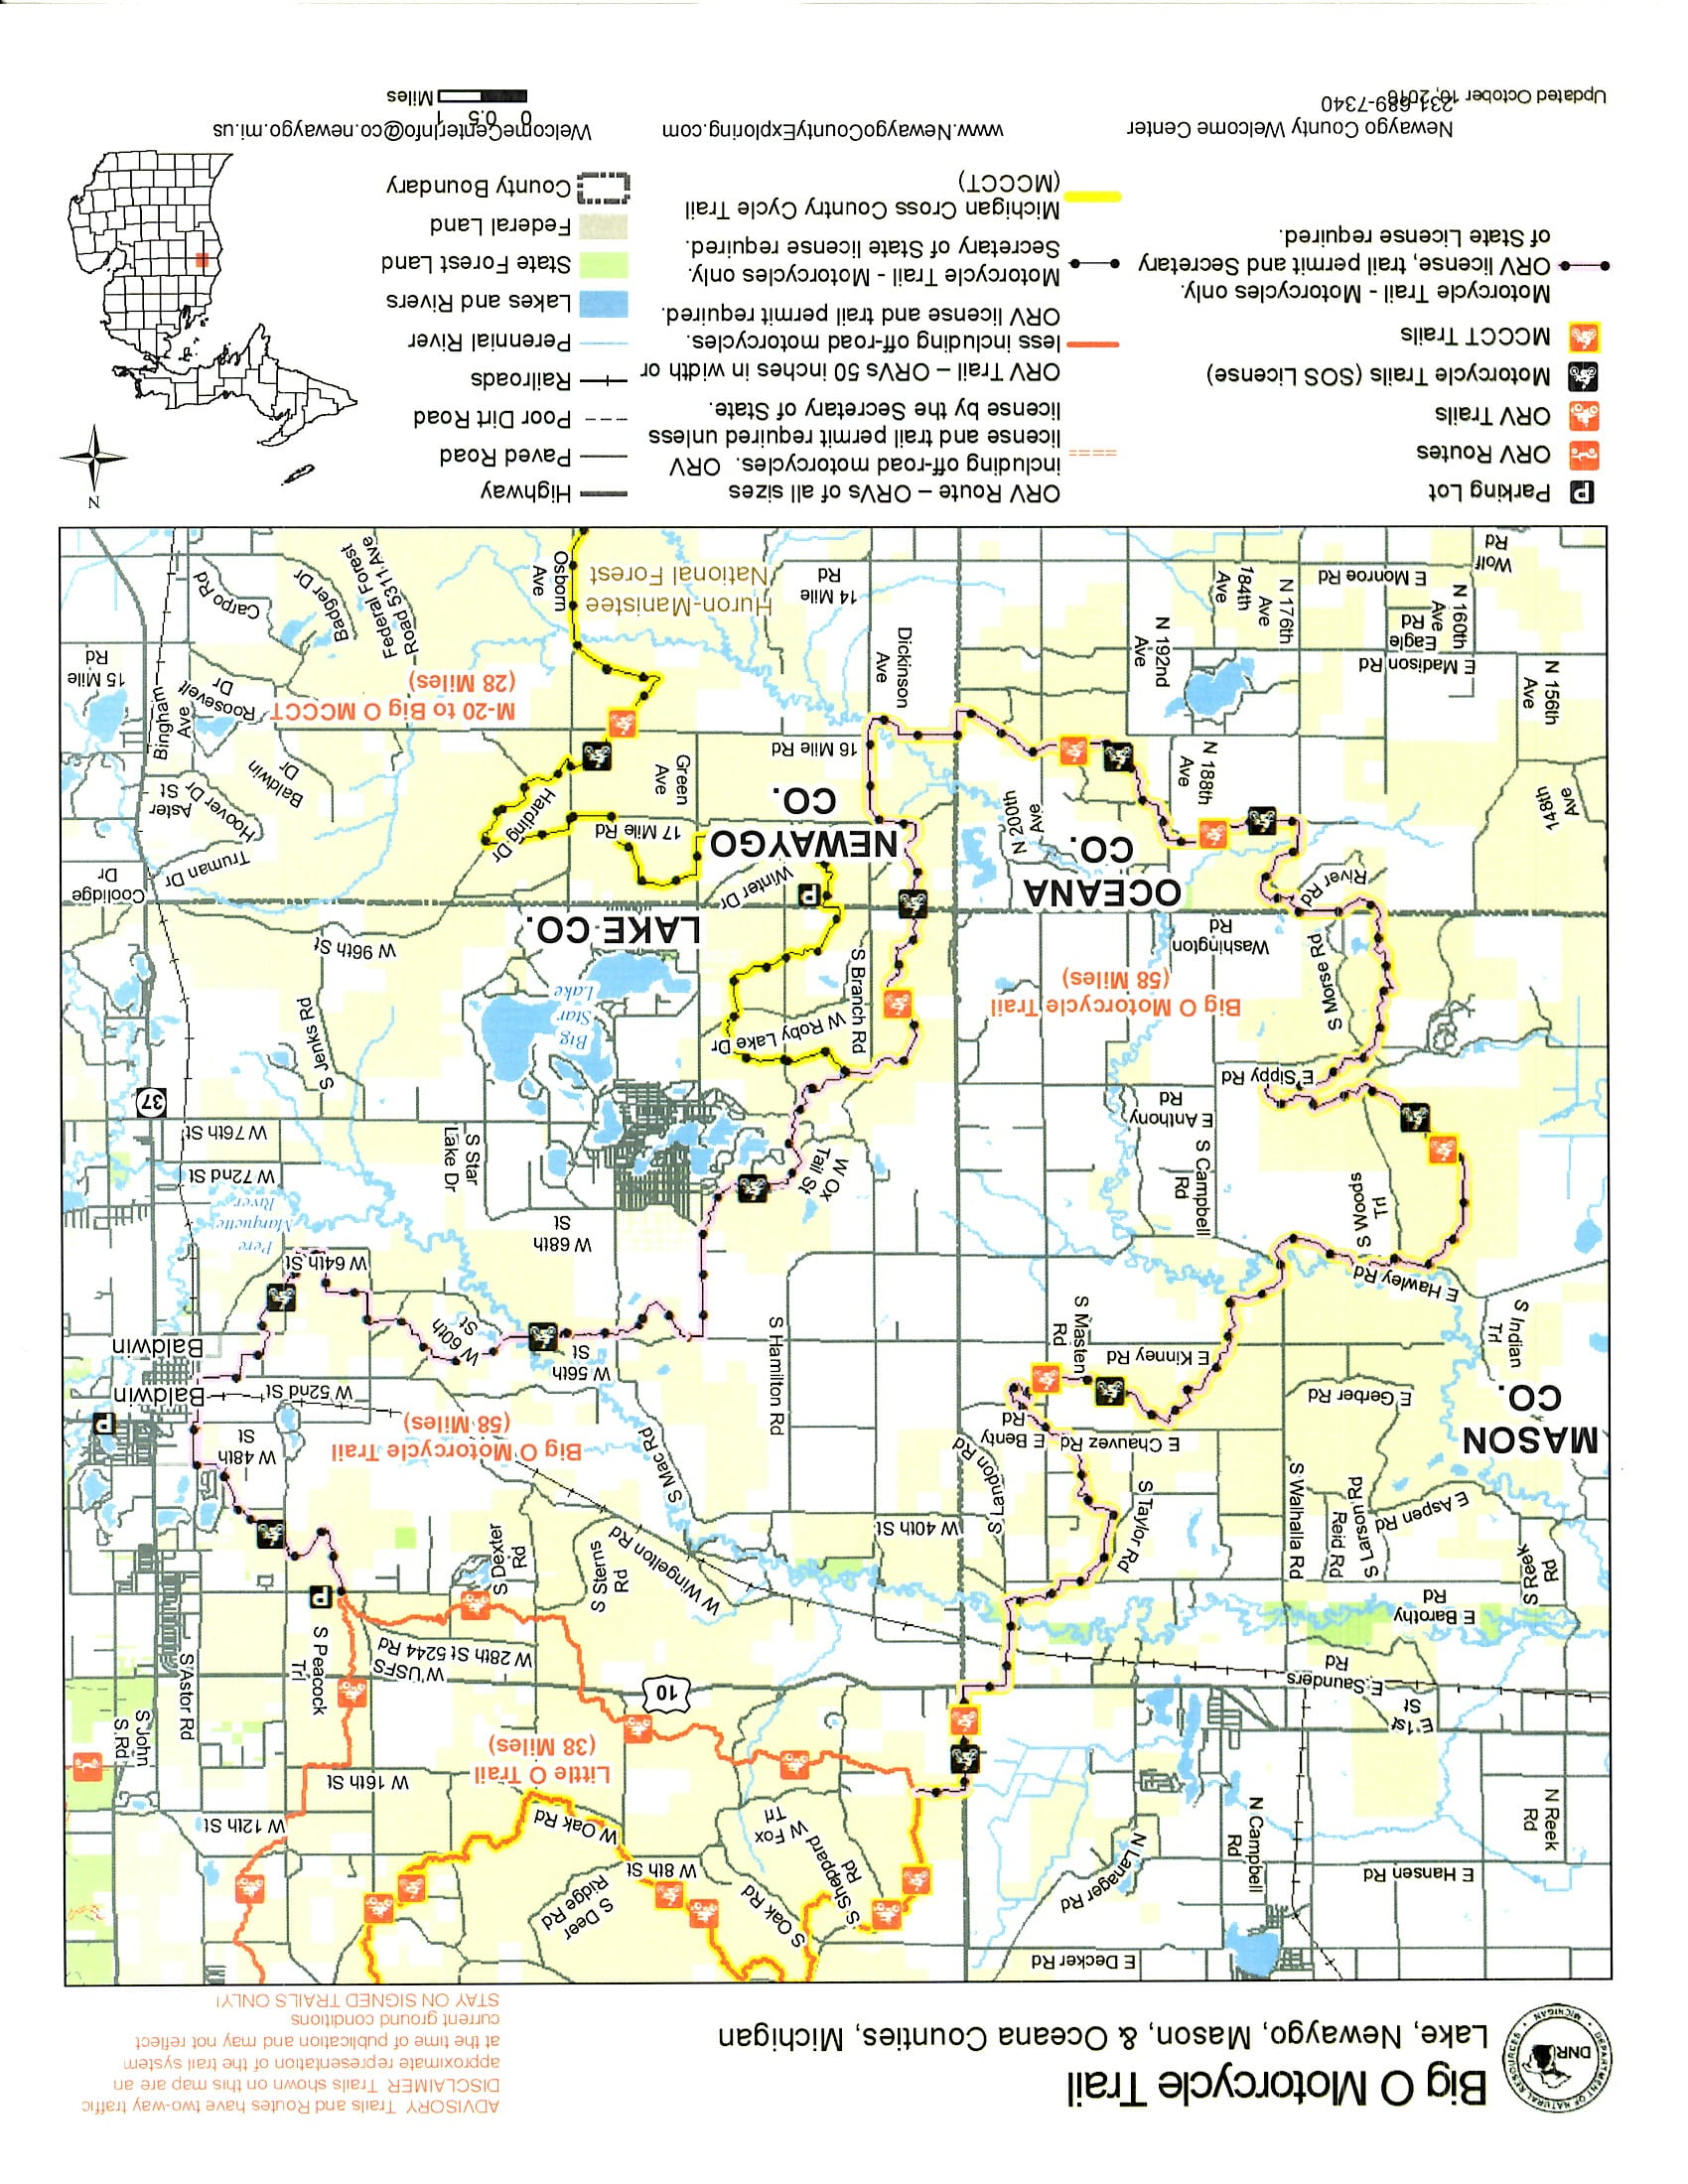 Michigan Cross Country Cycle Trail - Newaygo County Exploring